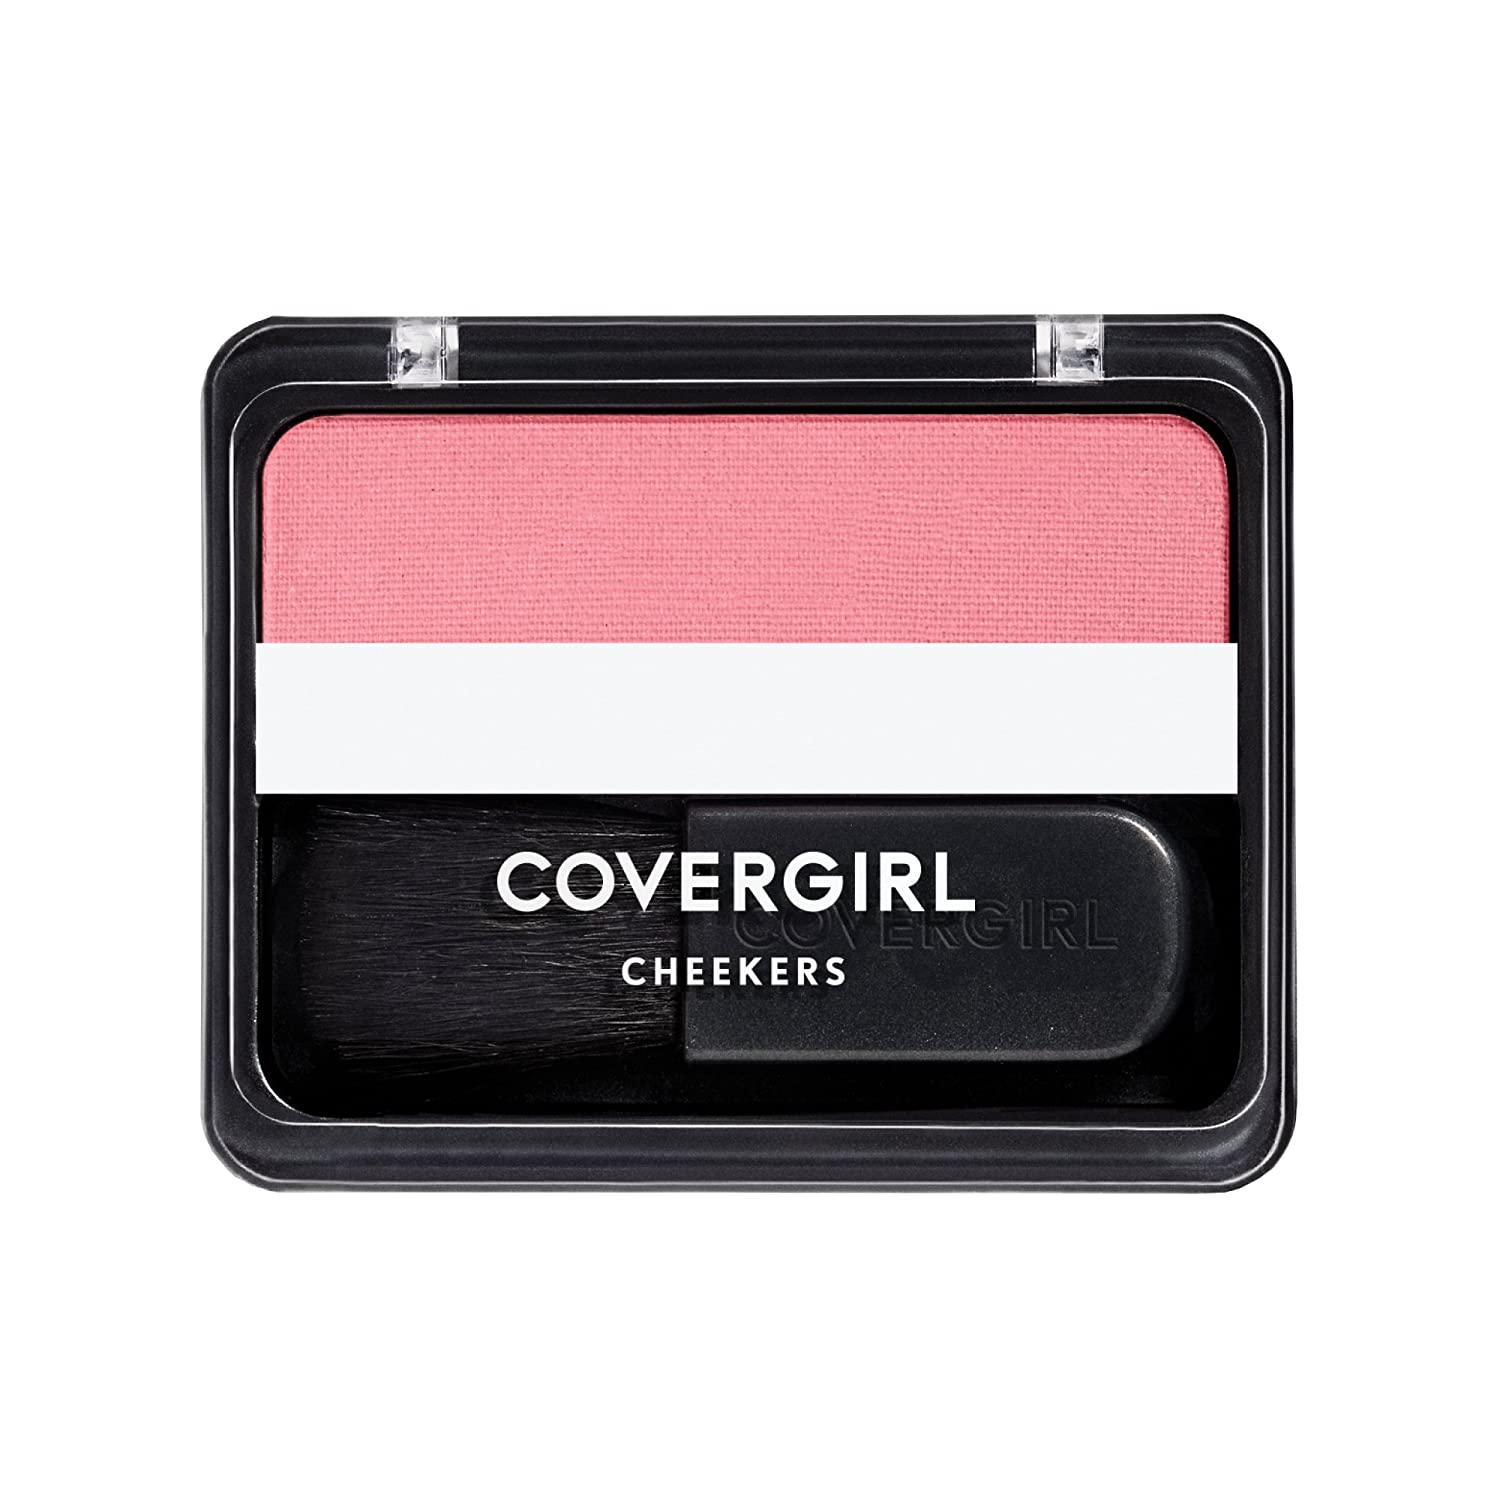 COVERGIRL Cheekers Blendable Powder Blush Plumberry Glow, .12 oz (packaging may vary)